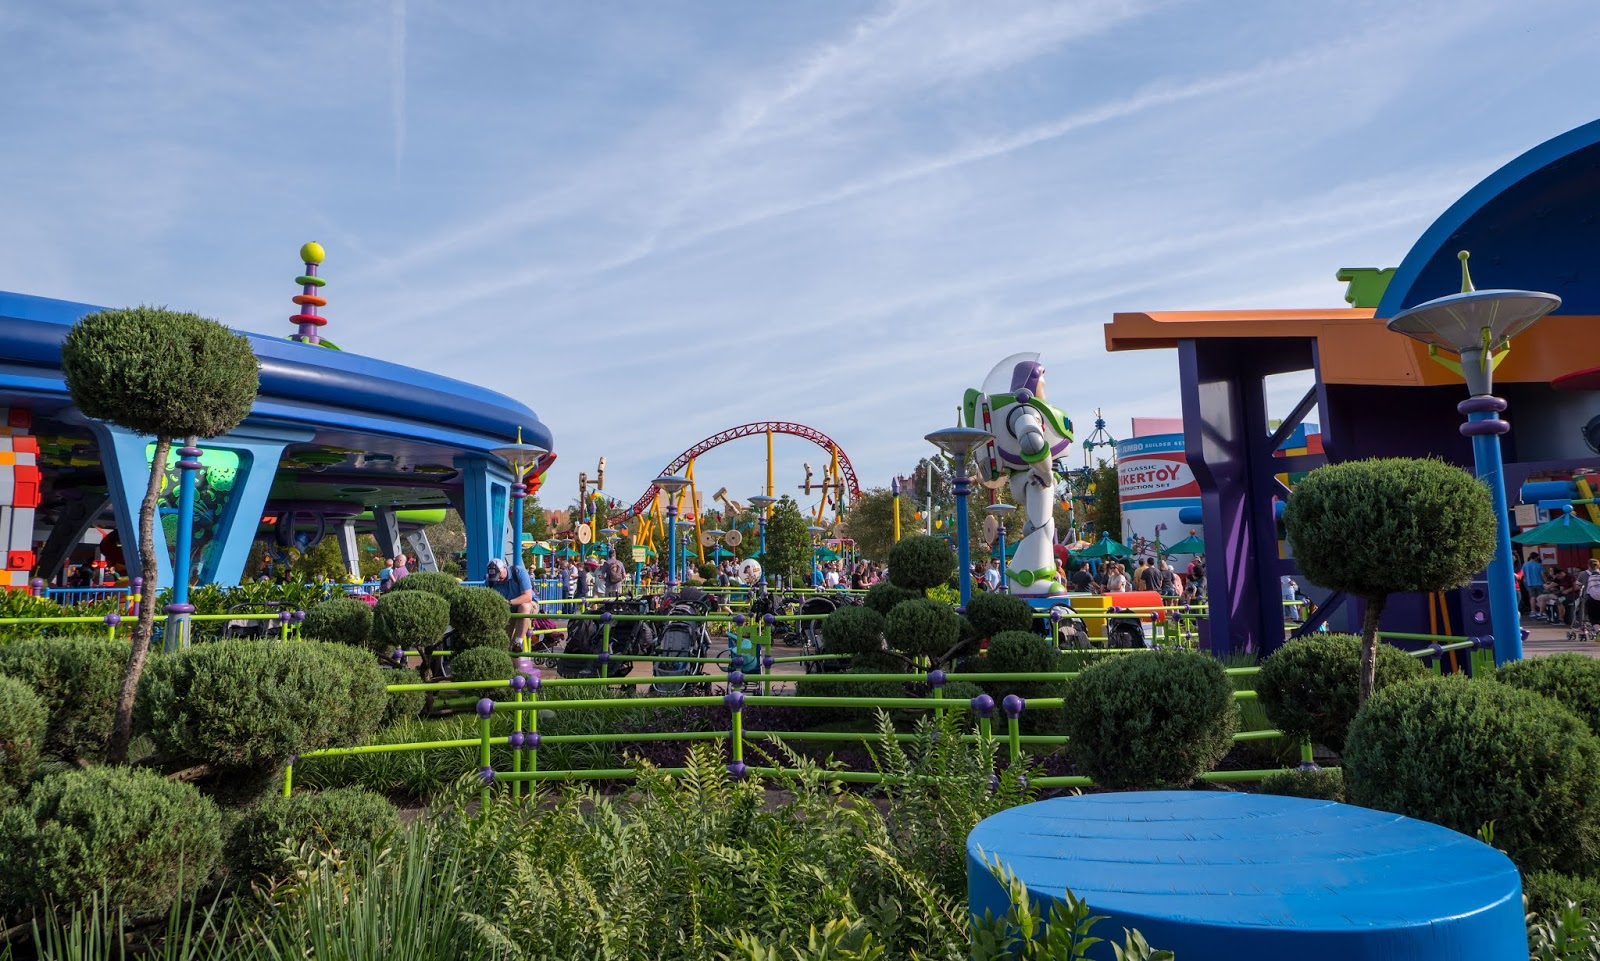 Toy Story Land at Disney's Hollywood Studios, Walt Disney World